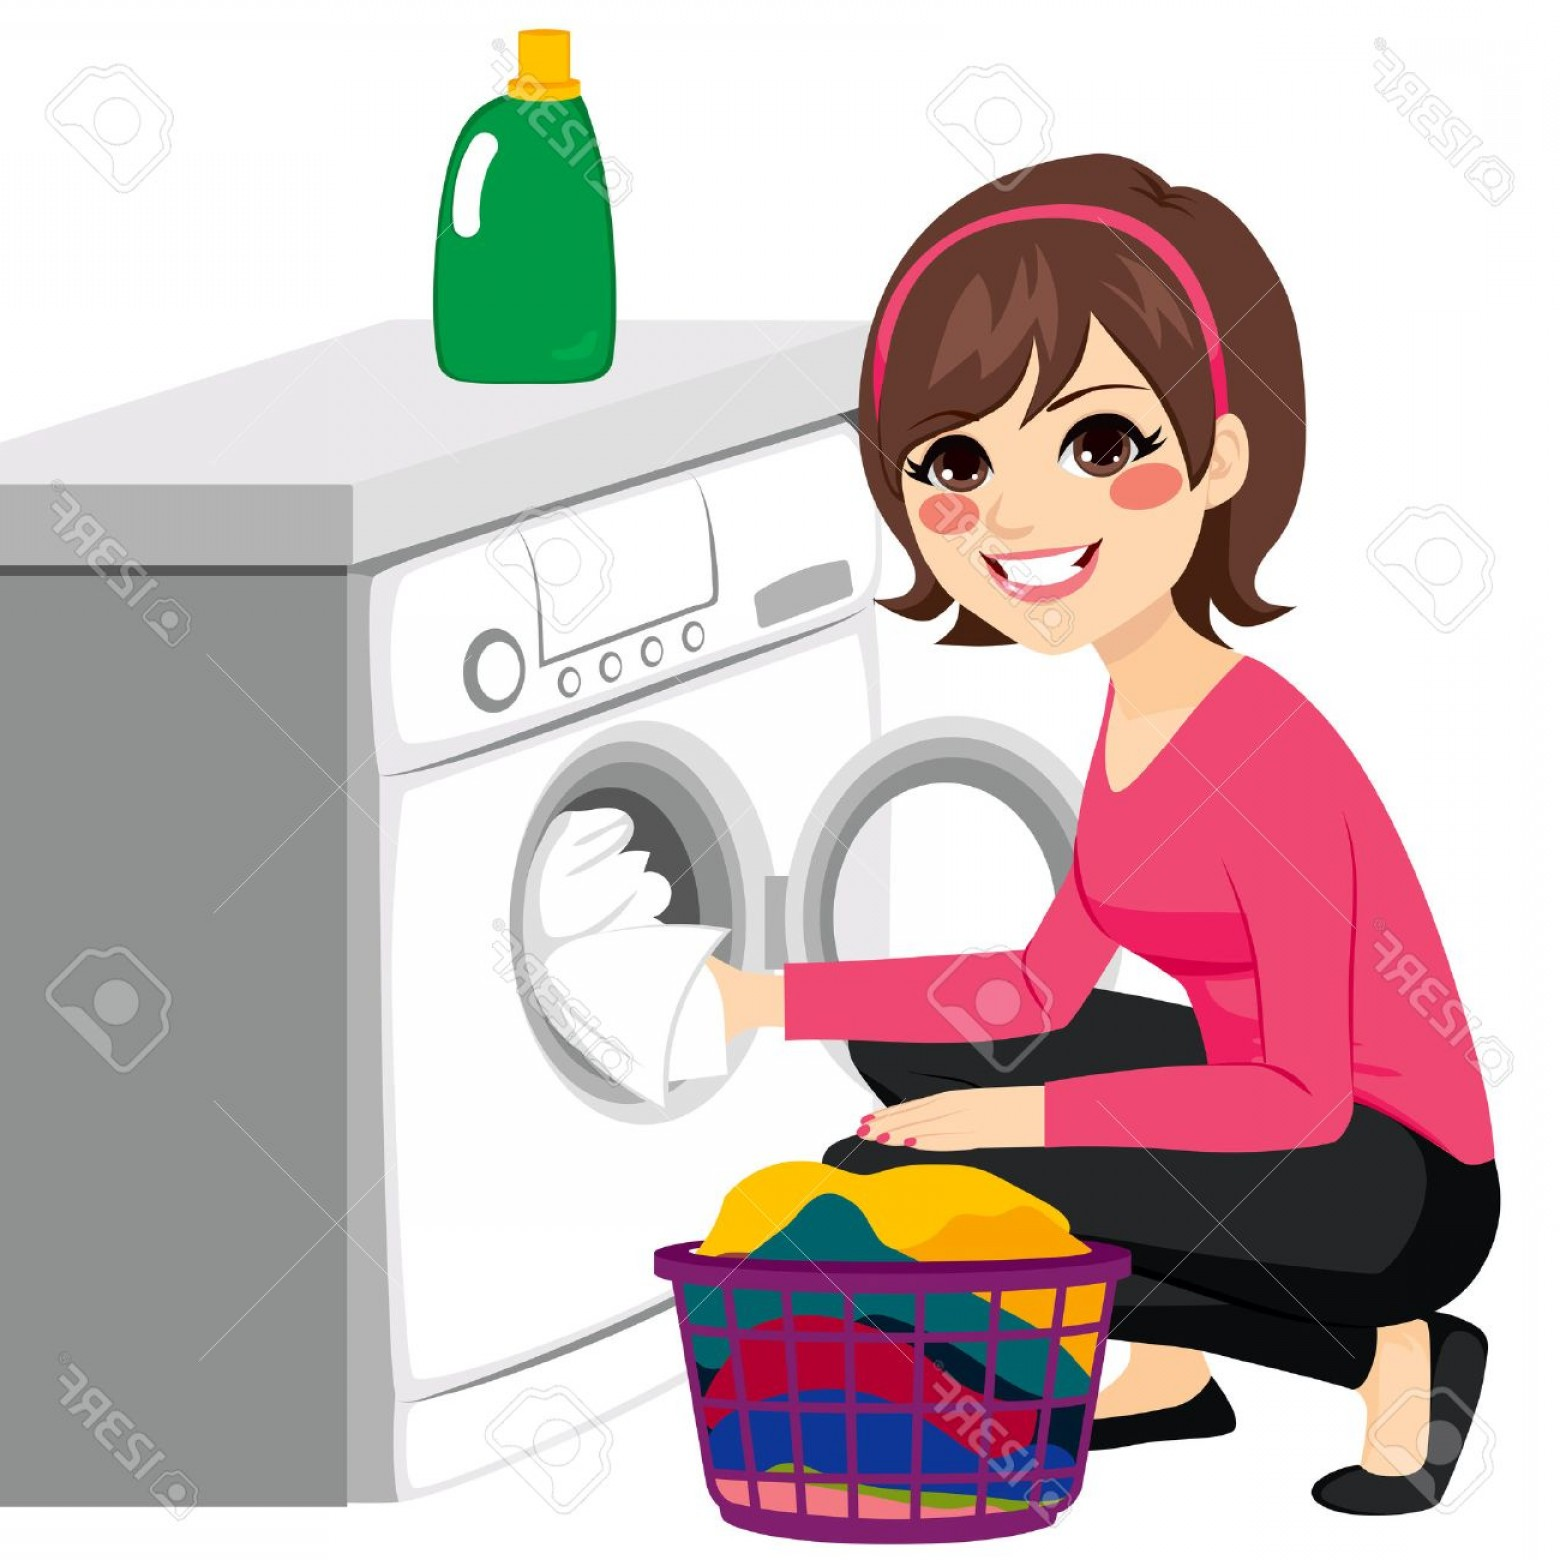 Clothes For Washing Vector: Photostock Vector Beautiful Young Woman Doing Laundry Putting Dirty Clothes On Washing Machine From Basket